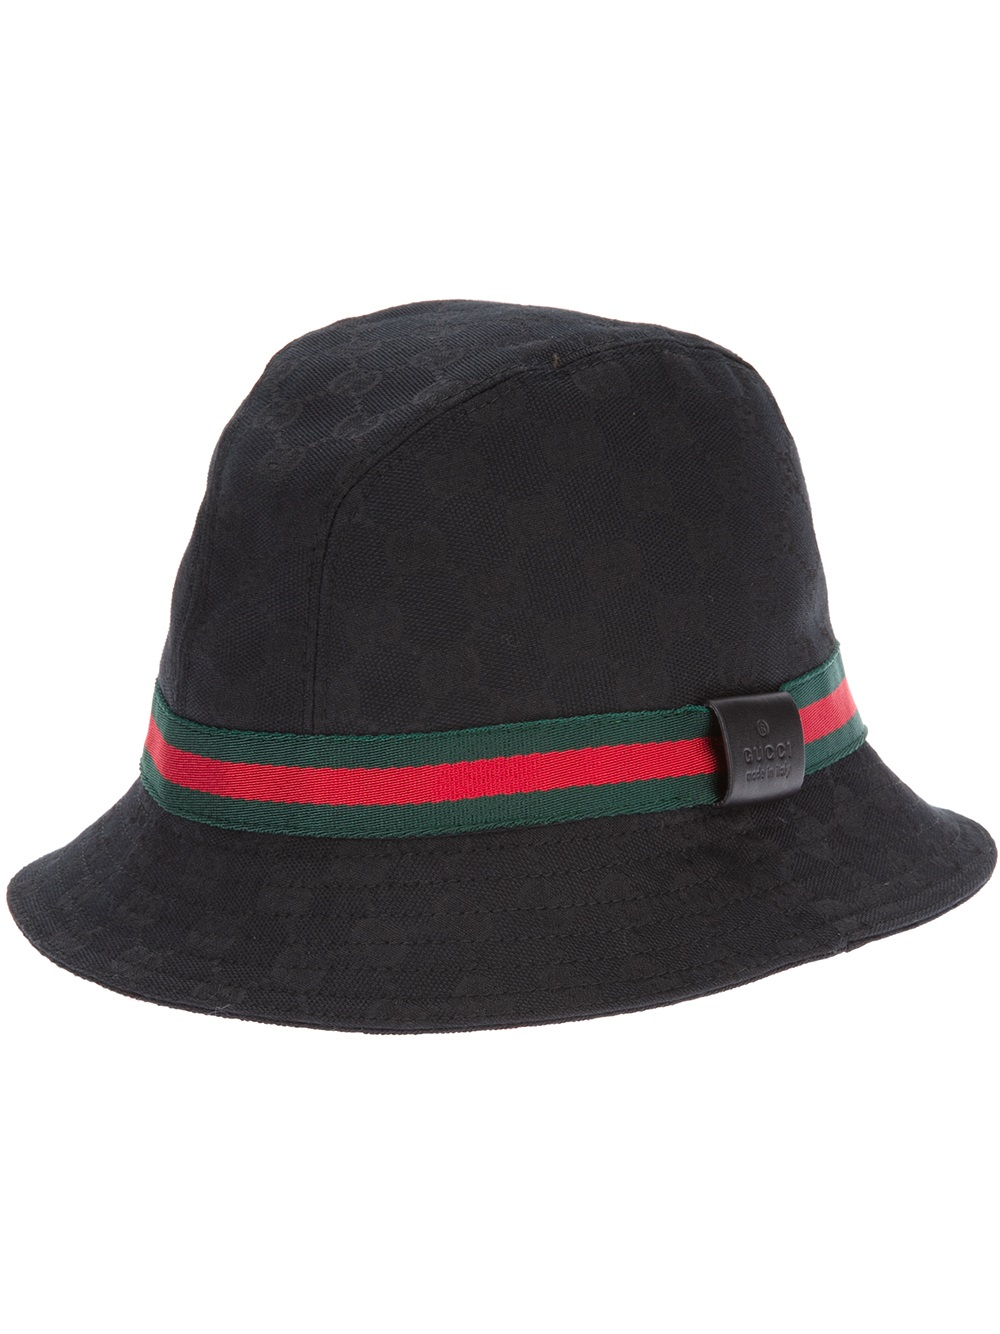 Lyst Gucci Logo Fedora In Black For Men